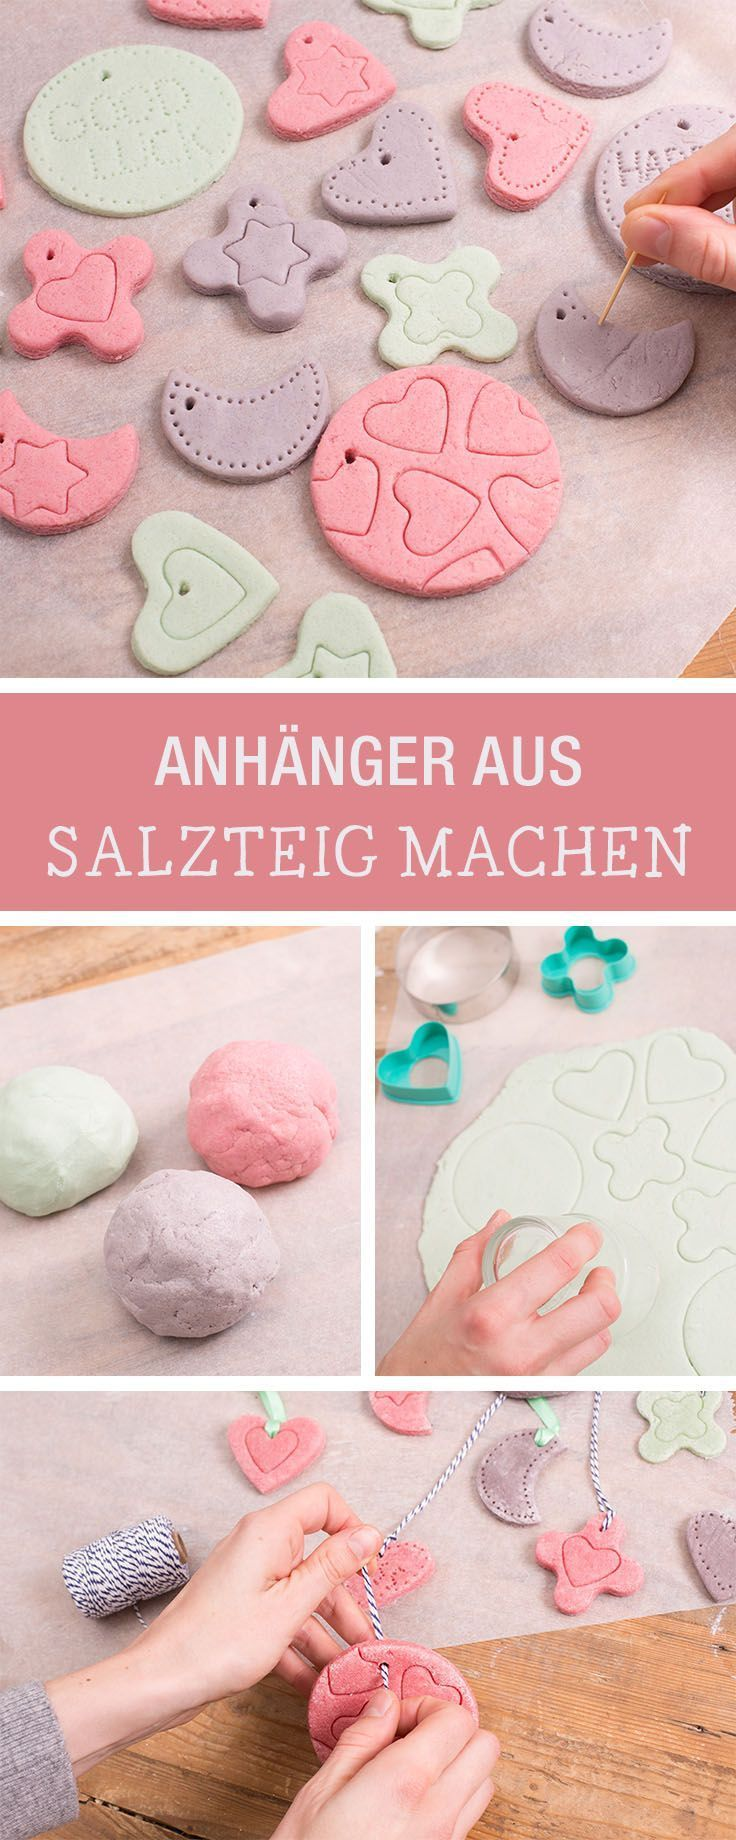 Make colorful pendants from salt dough yourself#colorful #dough #pendants #salt